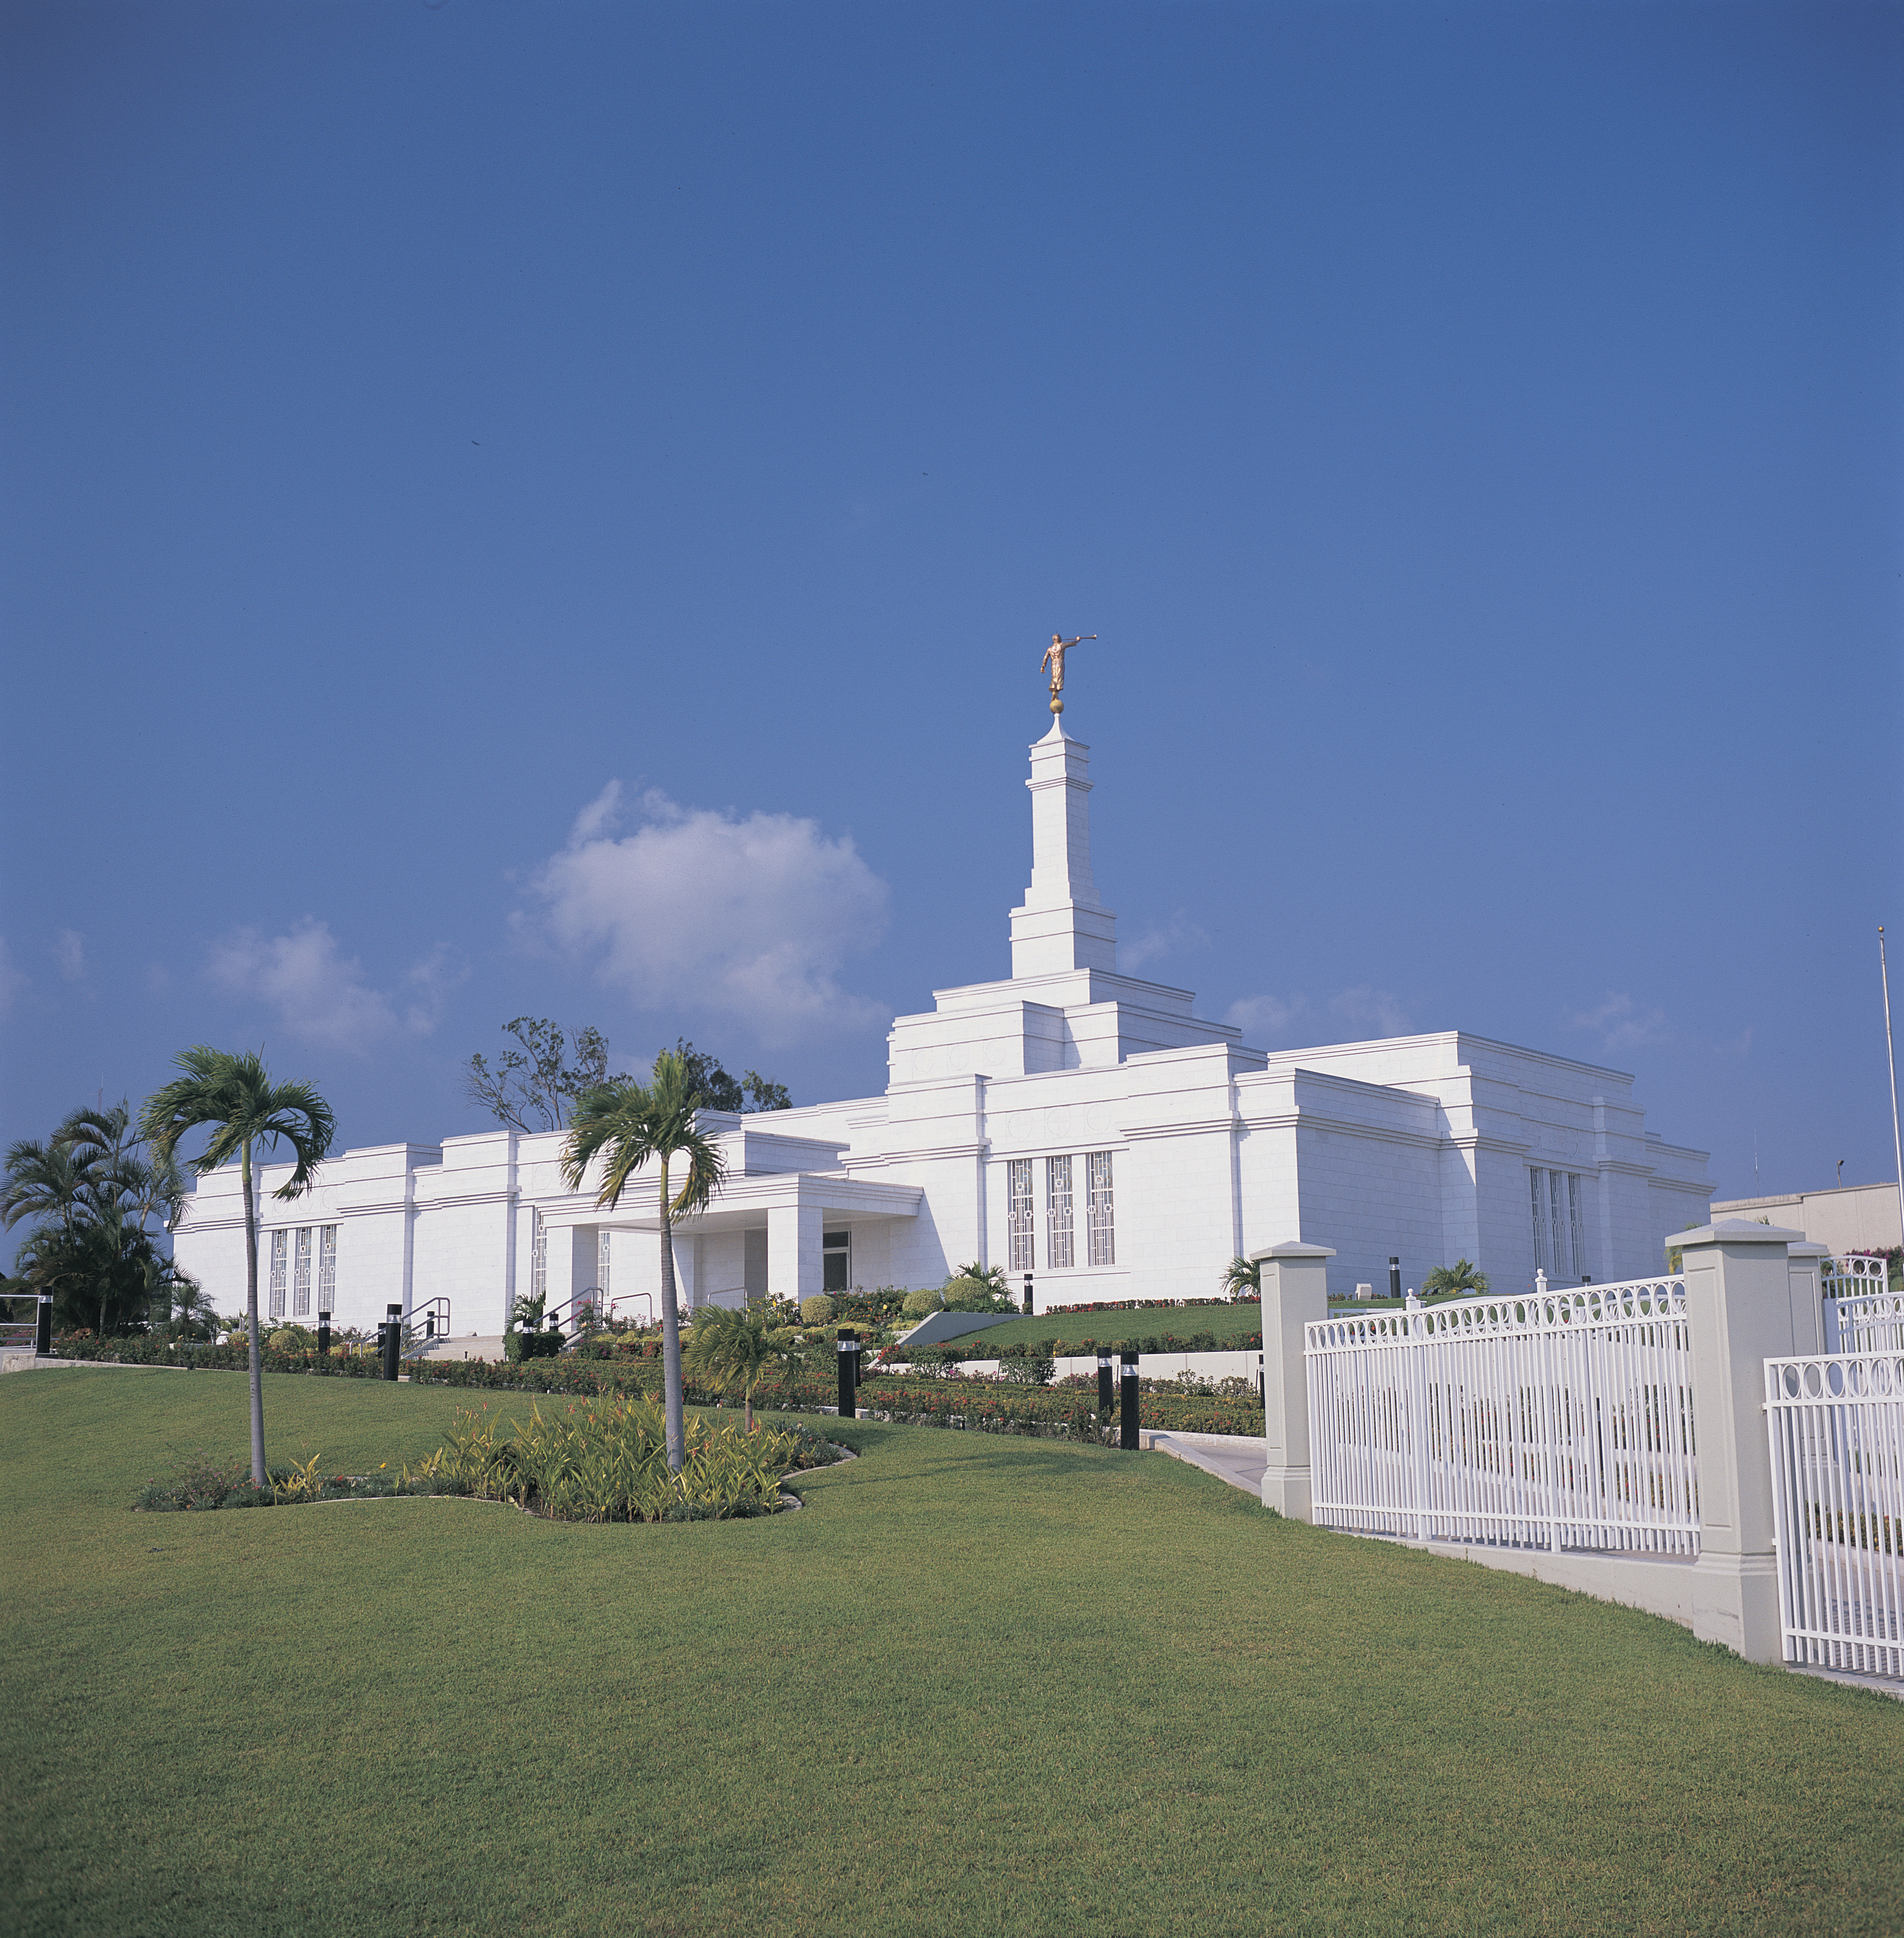 The Tampico Mexico Temple, including the scenery and entrance.